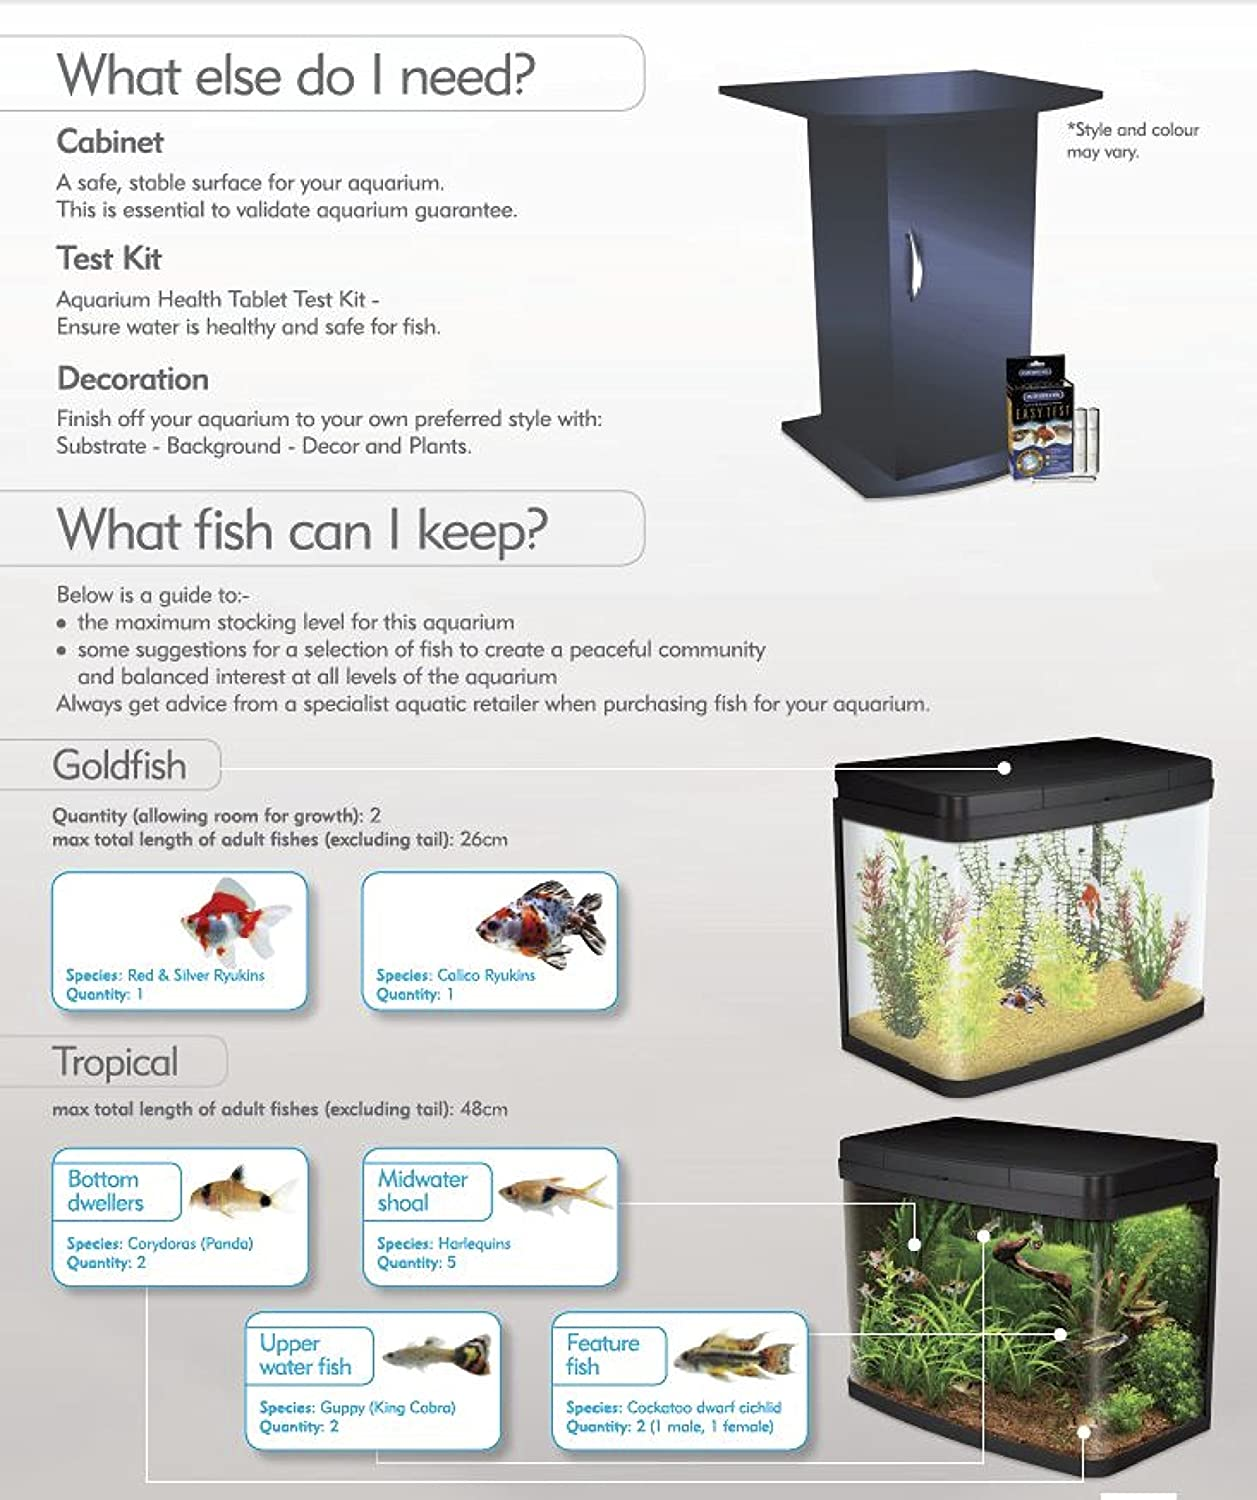 Freshwater aquarium fish bottom dwellers - Interpet Insight Glass Aquarium Fish Tank Premium Kit 40 Litre Amazon Co Uk Pet Supplies